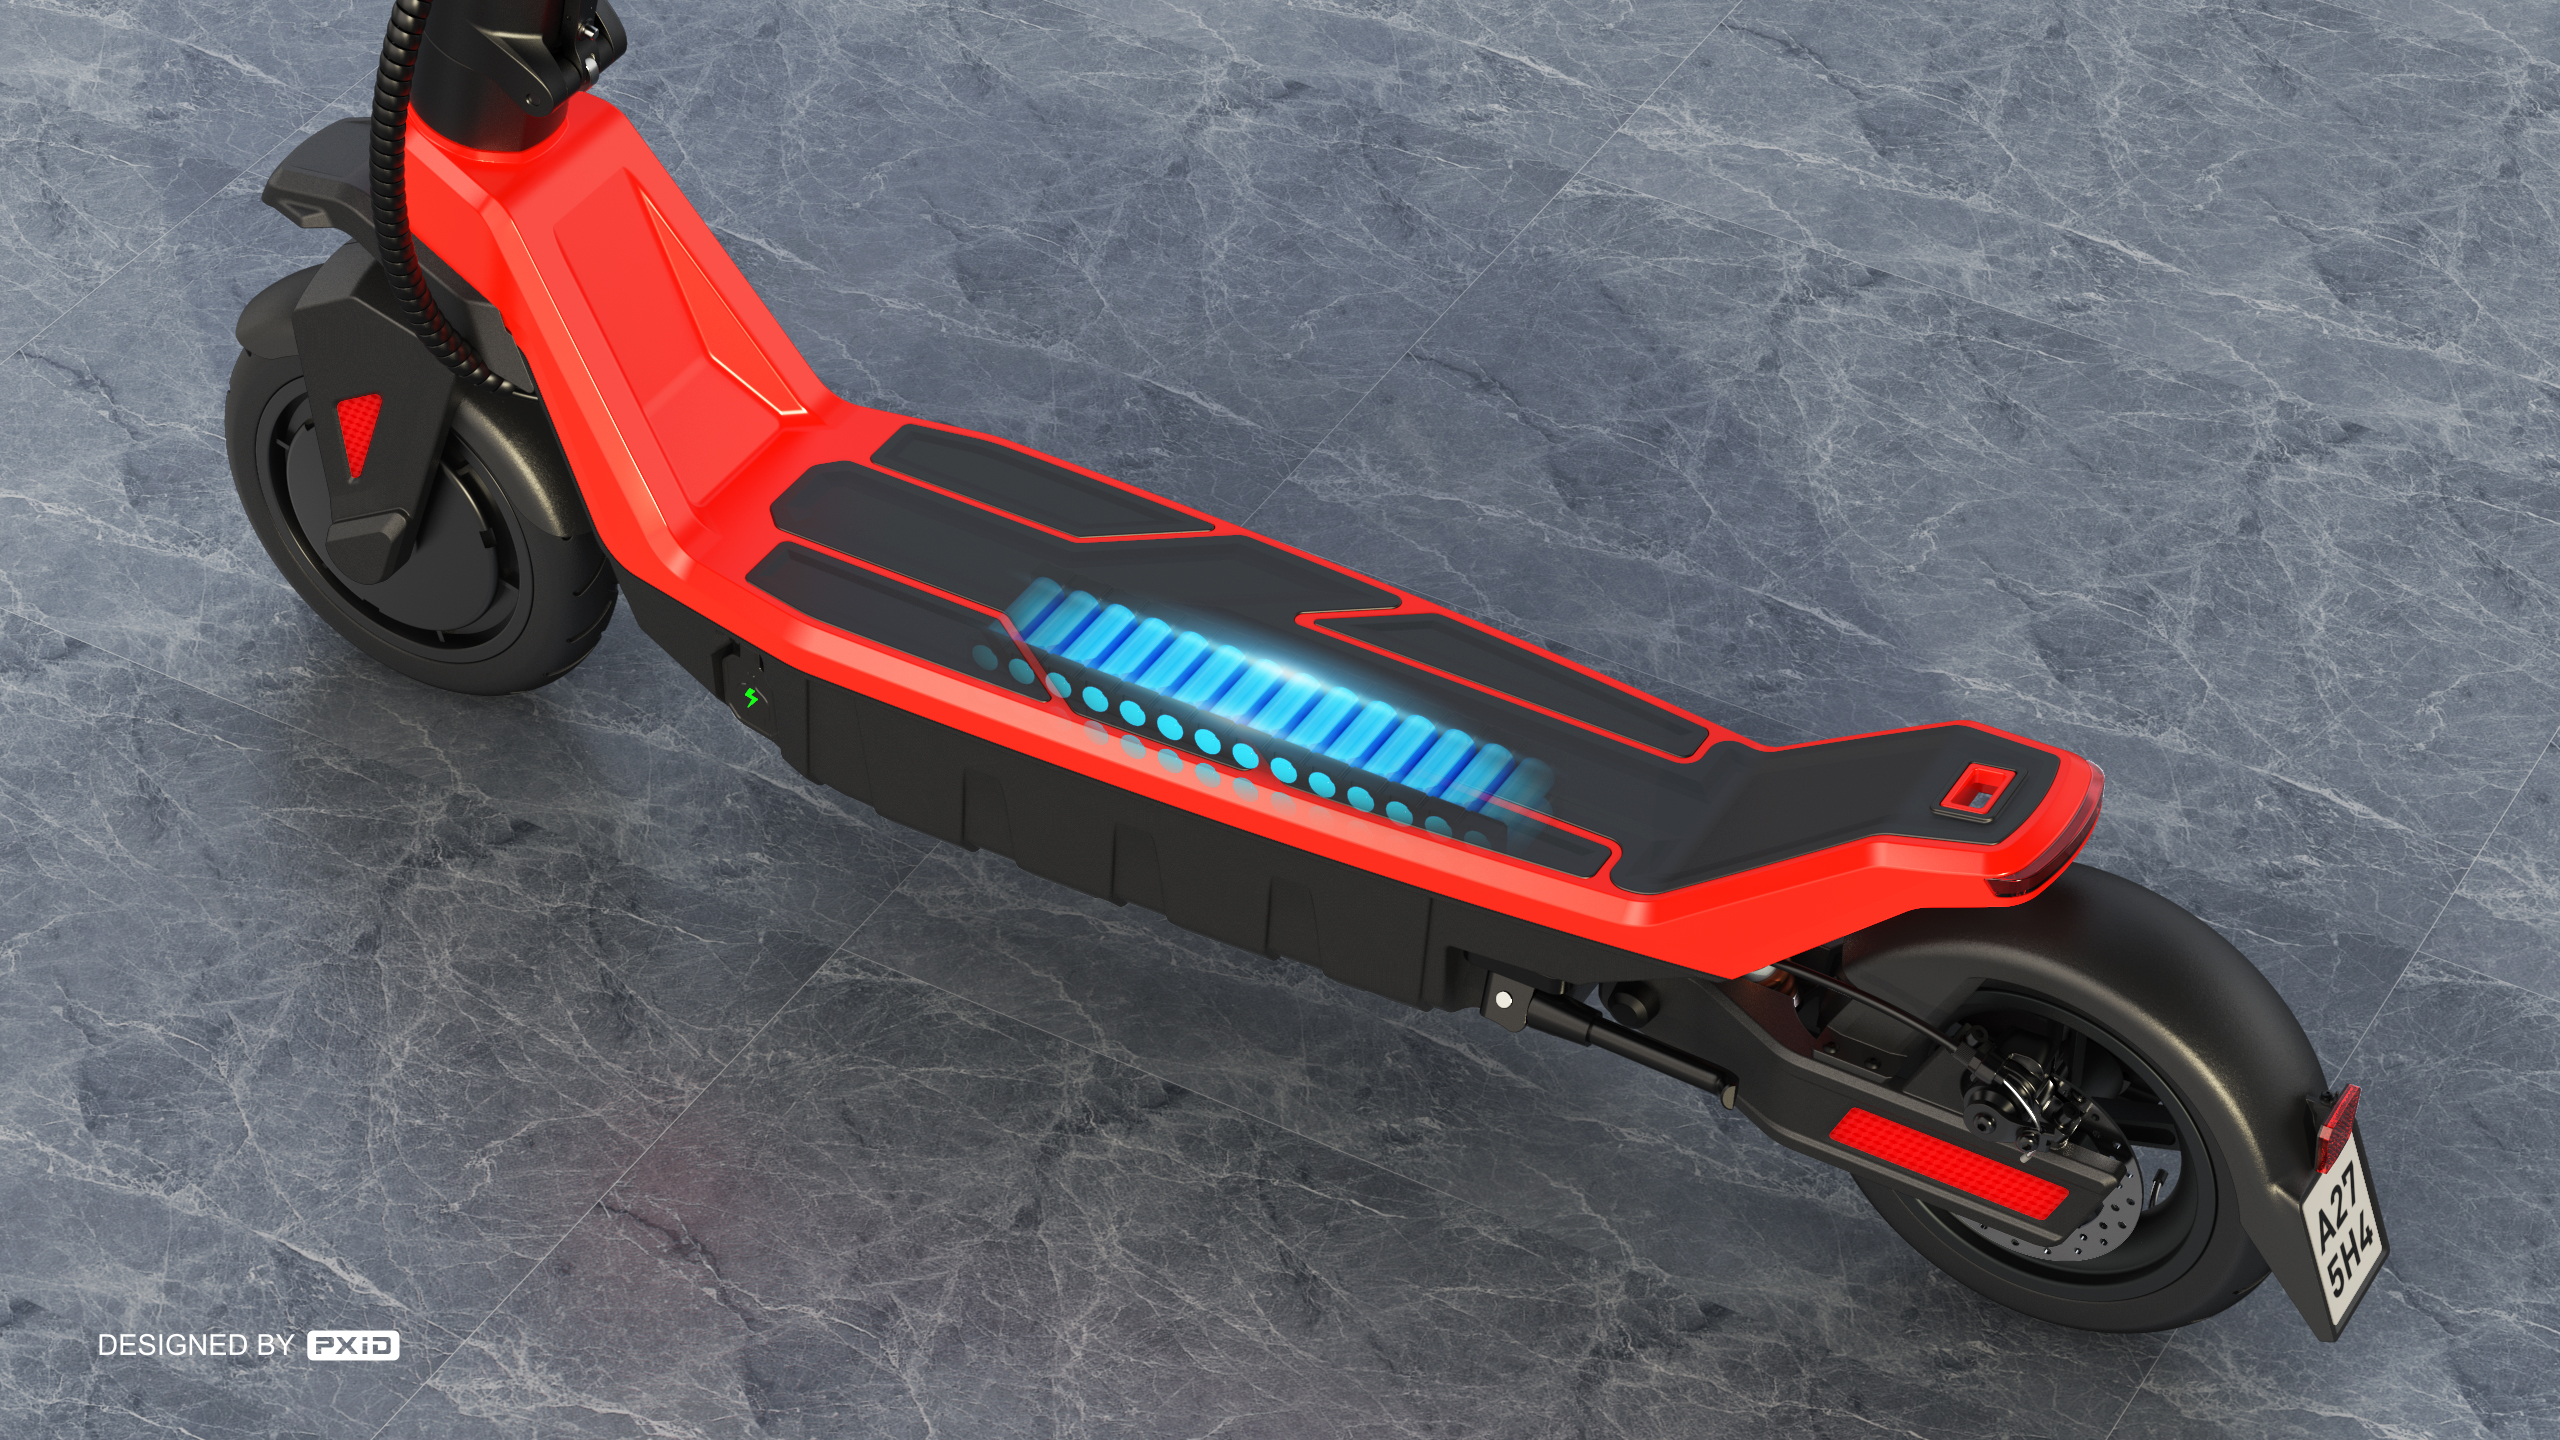 8.5 inch foldable electric scooter design